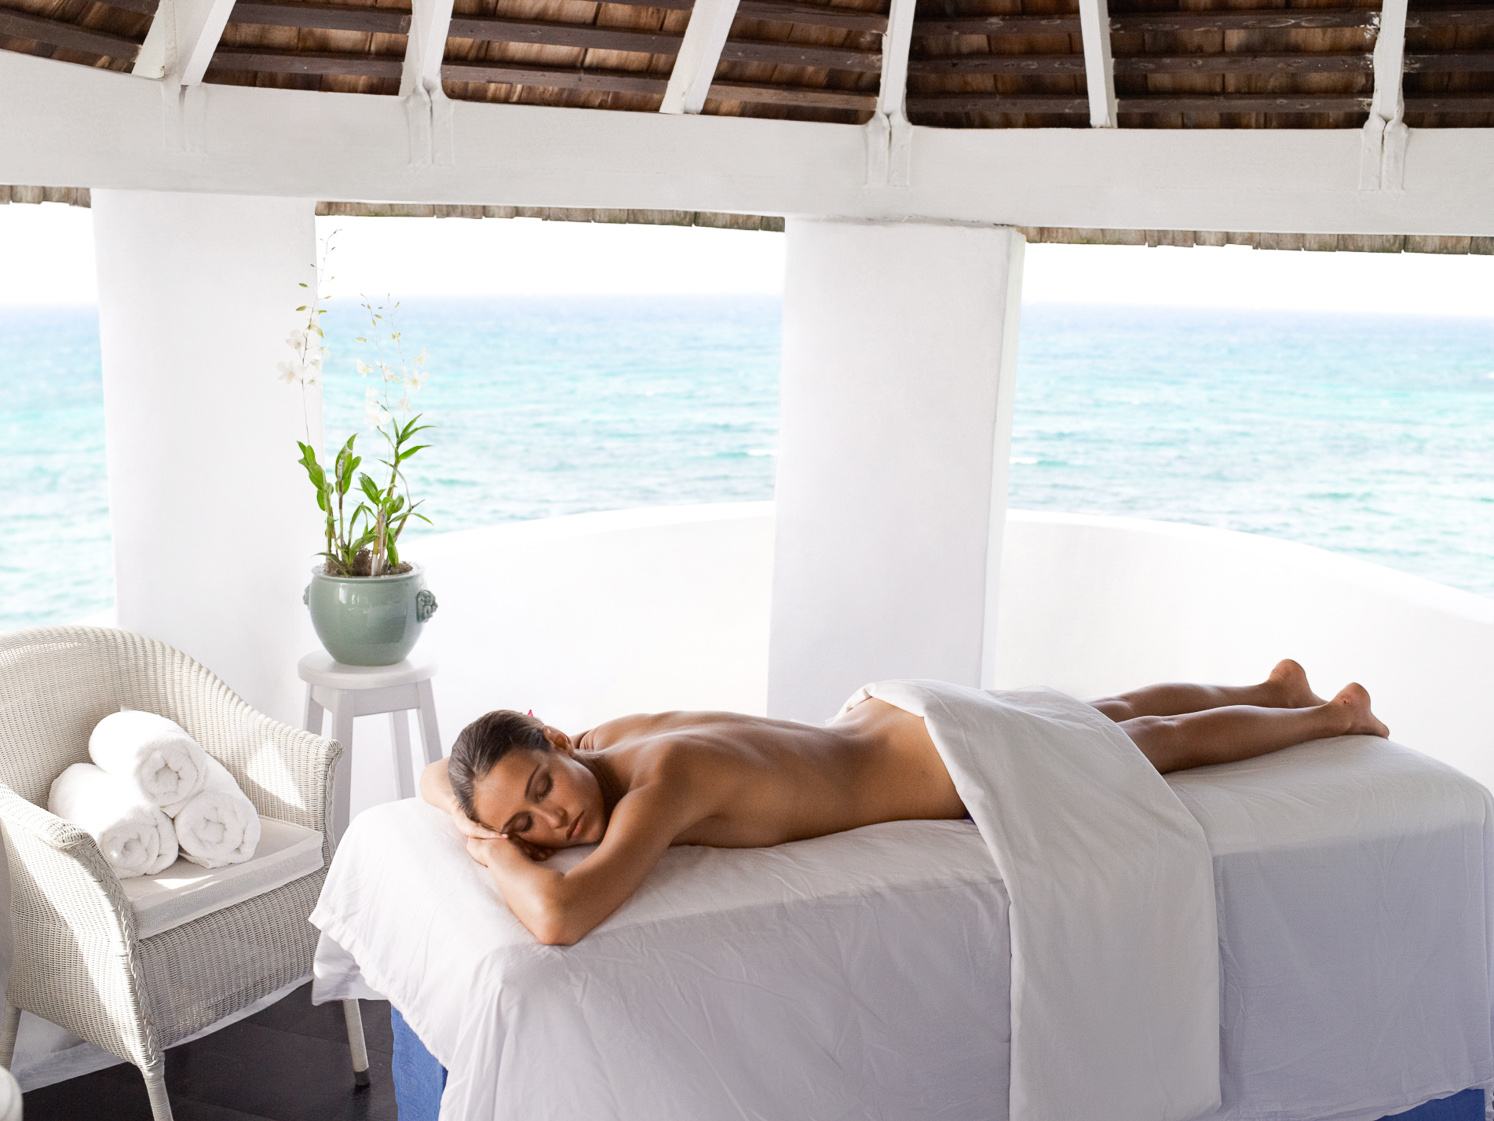 Relax and rejuvenate with a massage